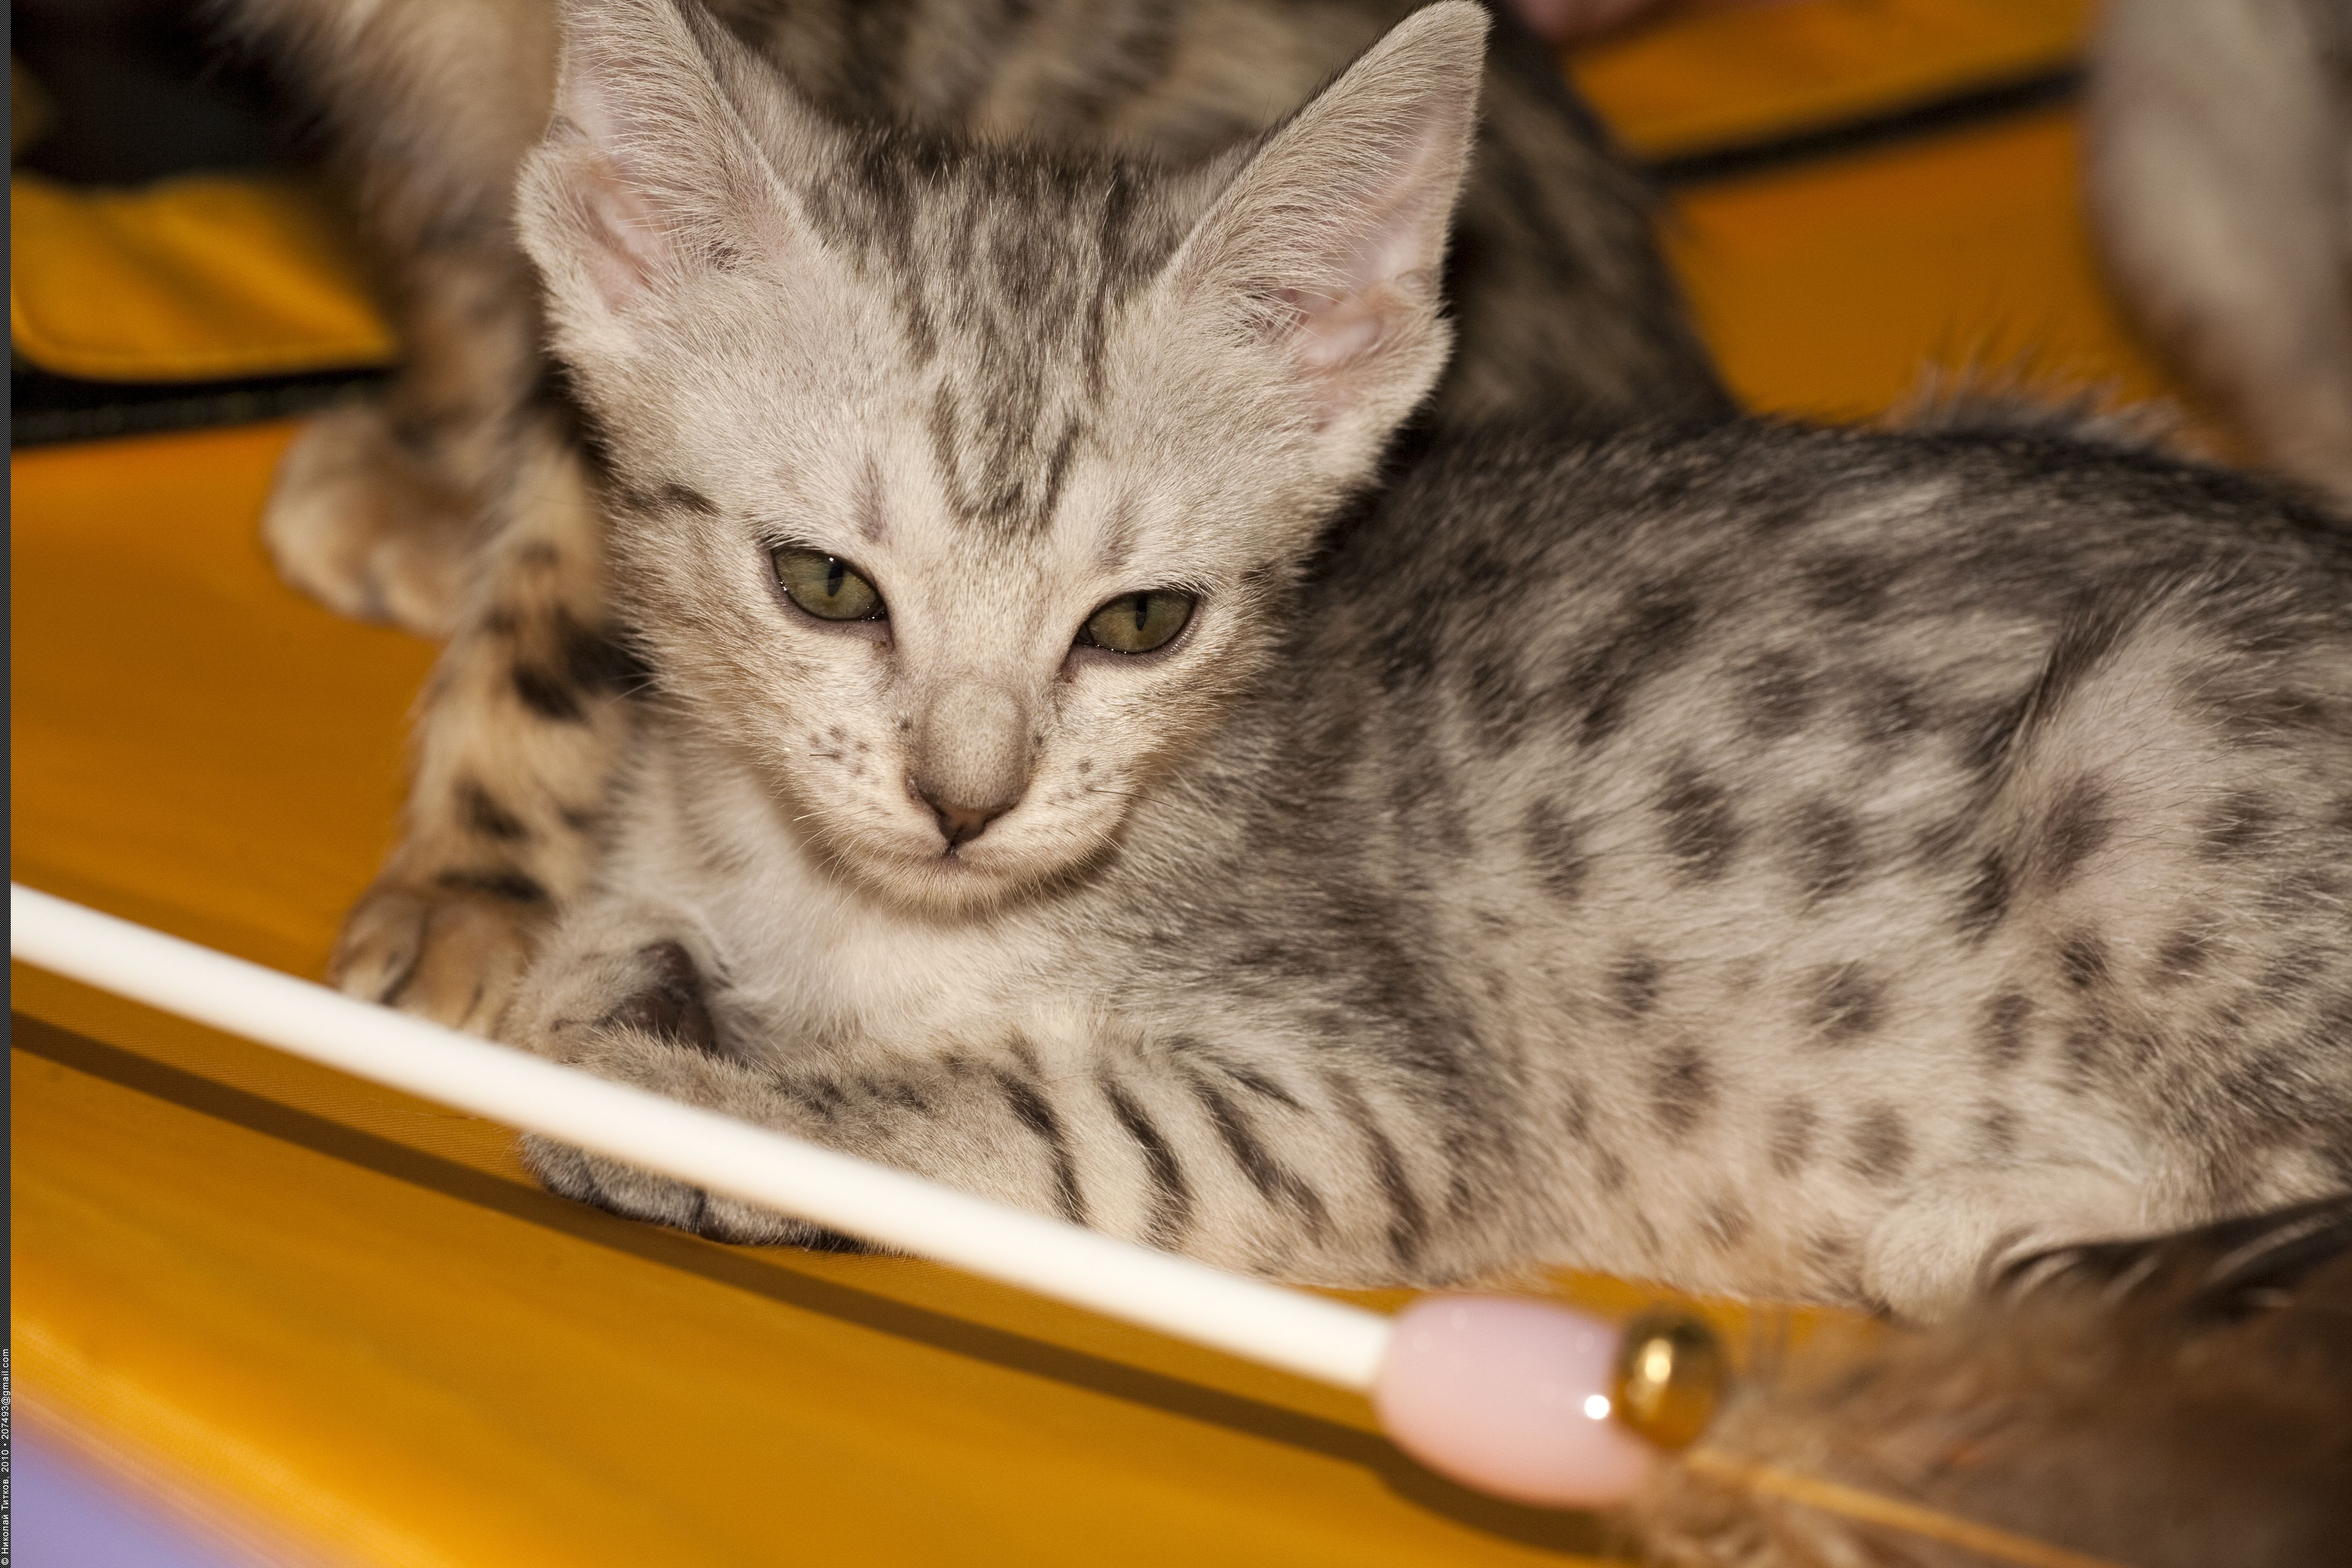 Ocicat Kitten Nickolas Titkov The Ocicat Cat Is An All Domestic Breed Of Cat Which Resembles A Wild Cat But Has No Wild Dna Ocicat Cat Behavior Problems Cats